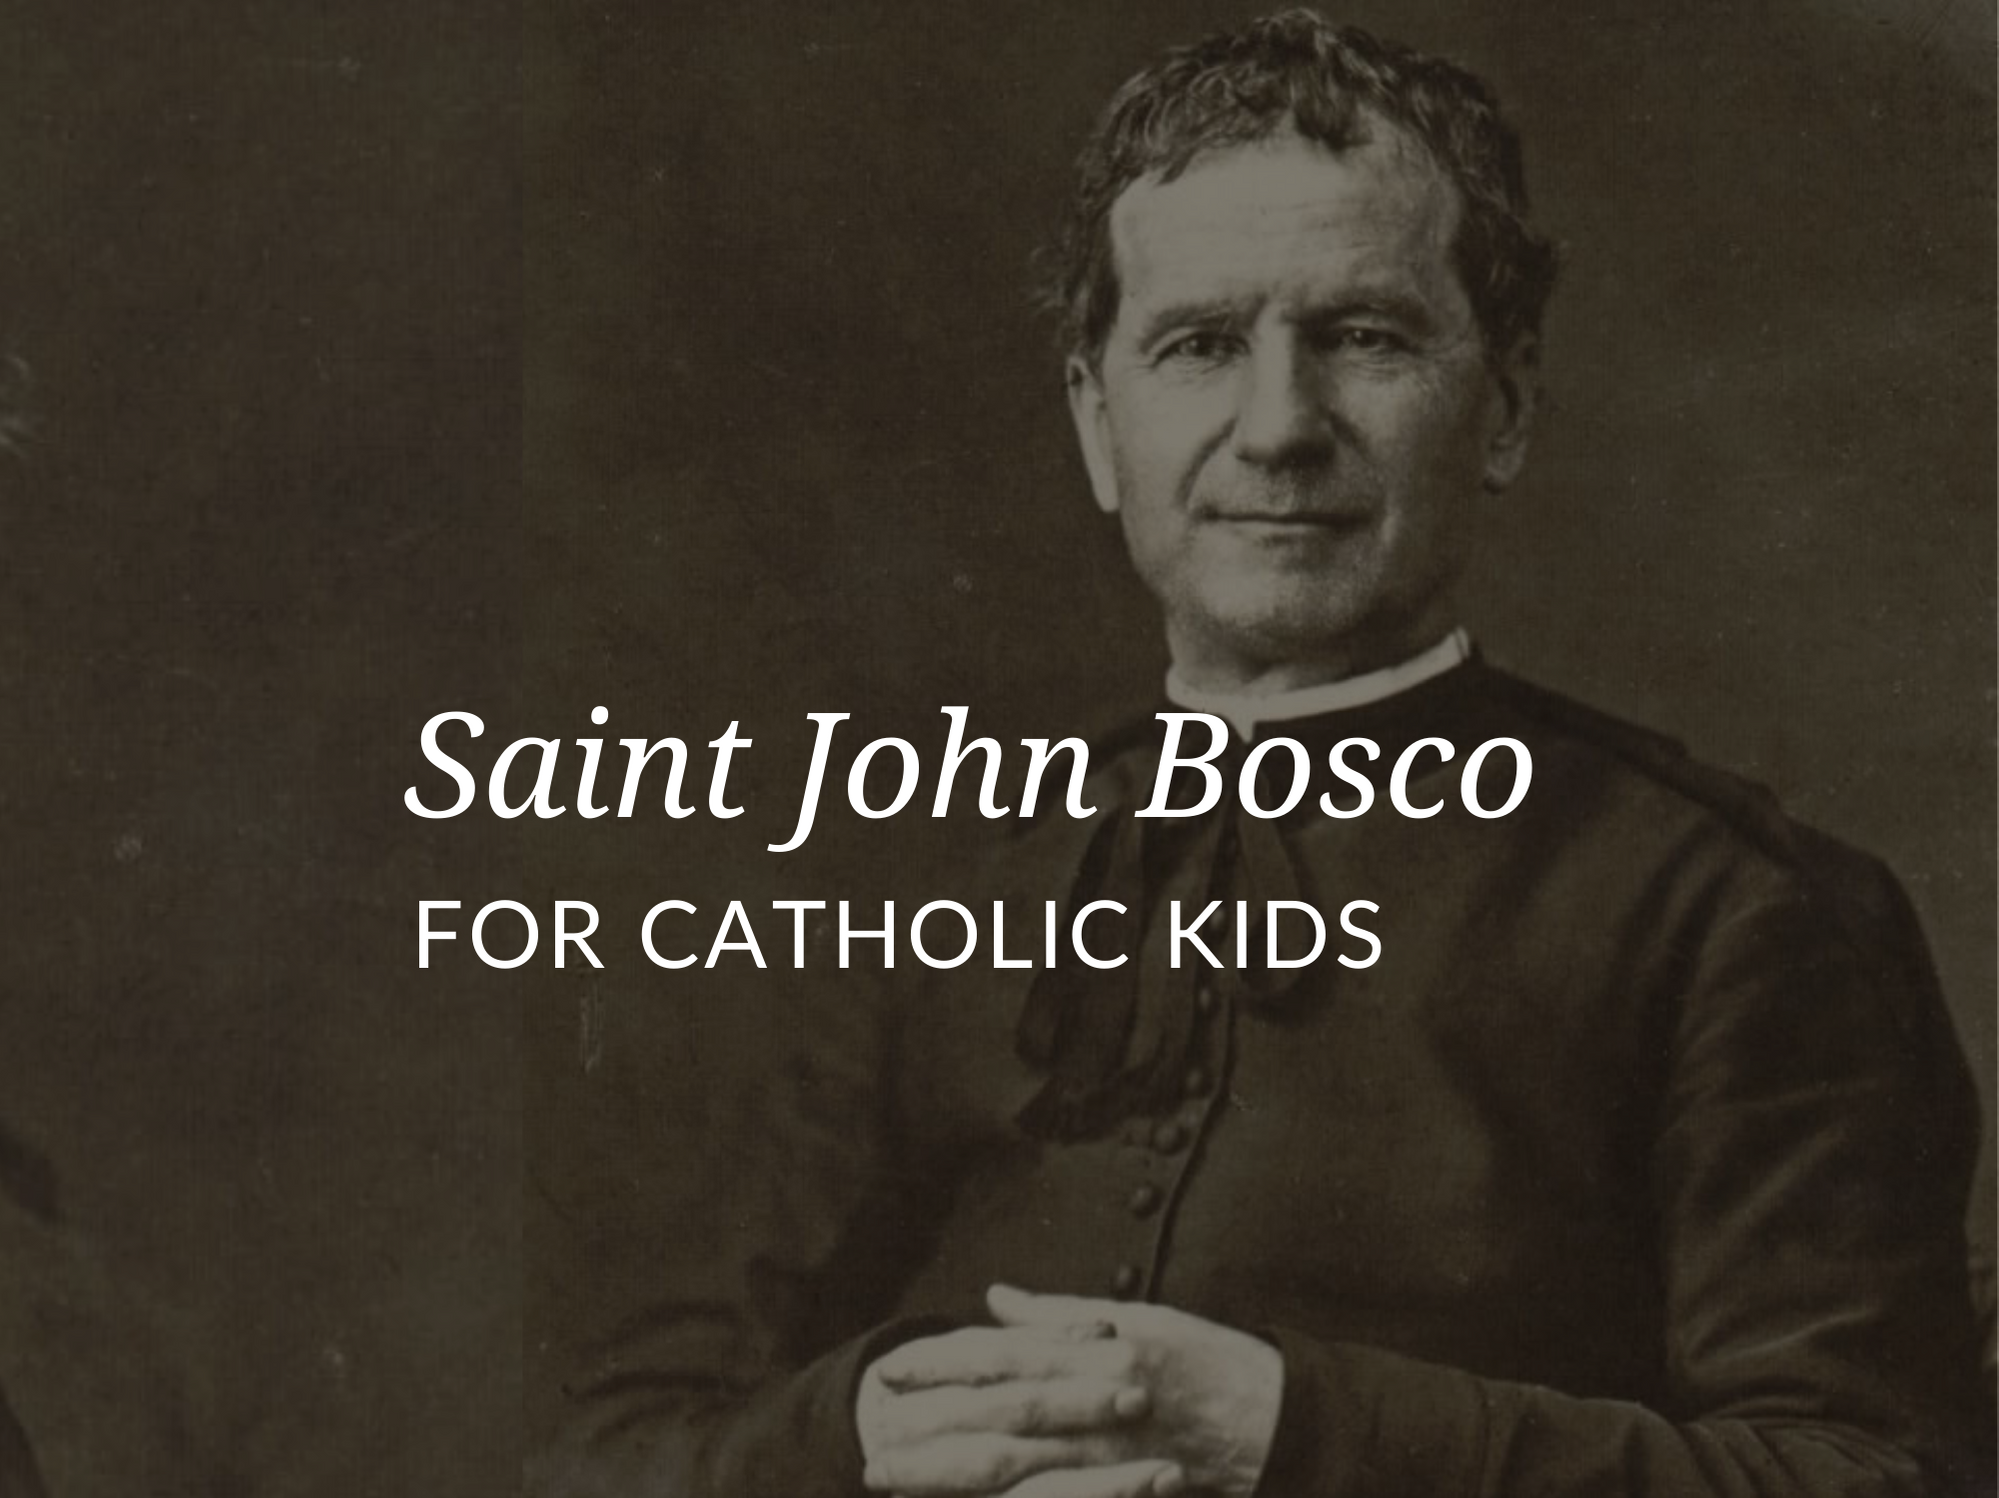 popular-saints-for-kids-saint-john-bosco Unspecified / Public domain